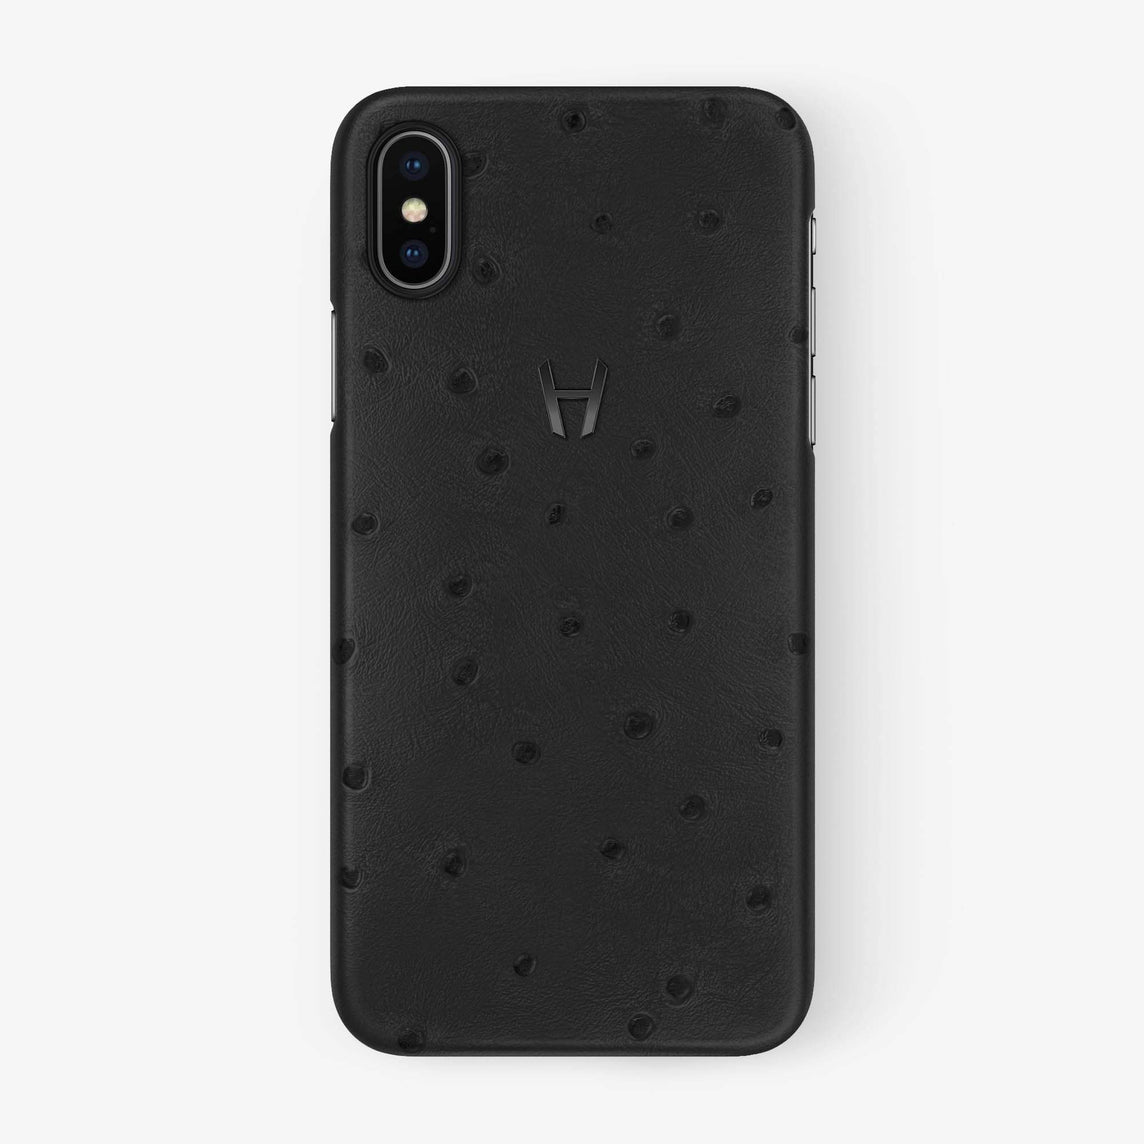 Ostrich Case iPhone Xs Max | Anthracite - Black withouth-personalization